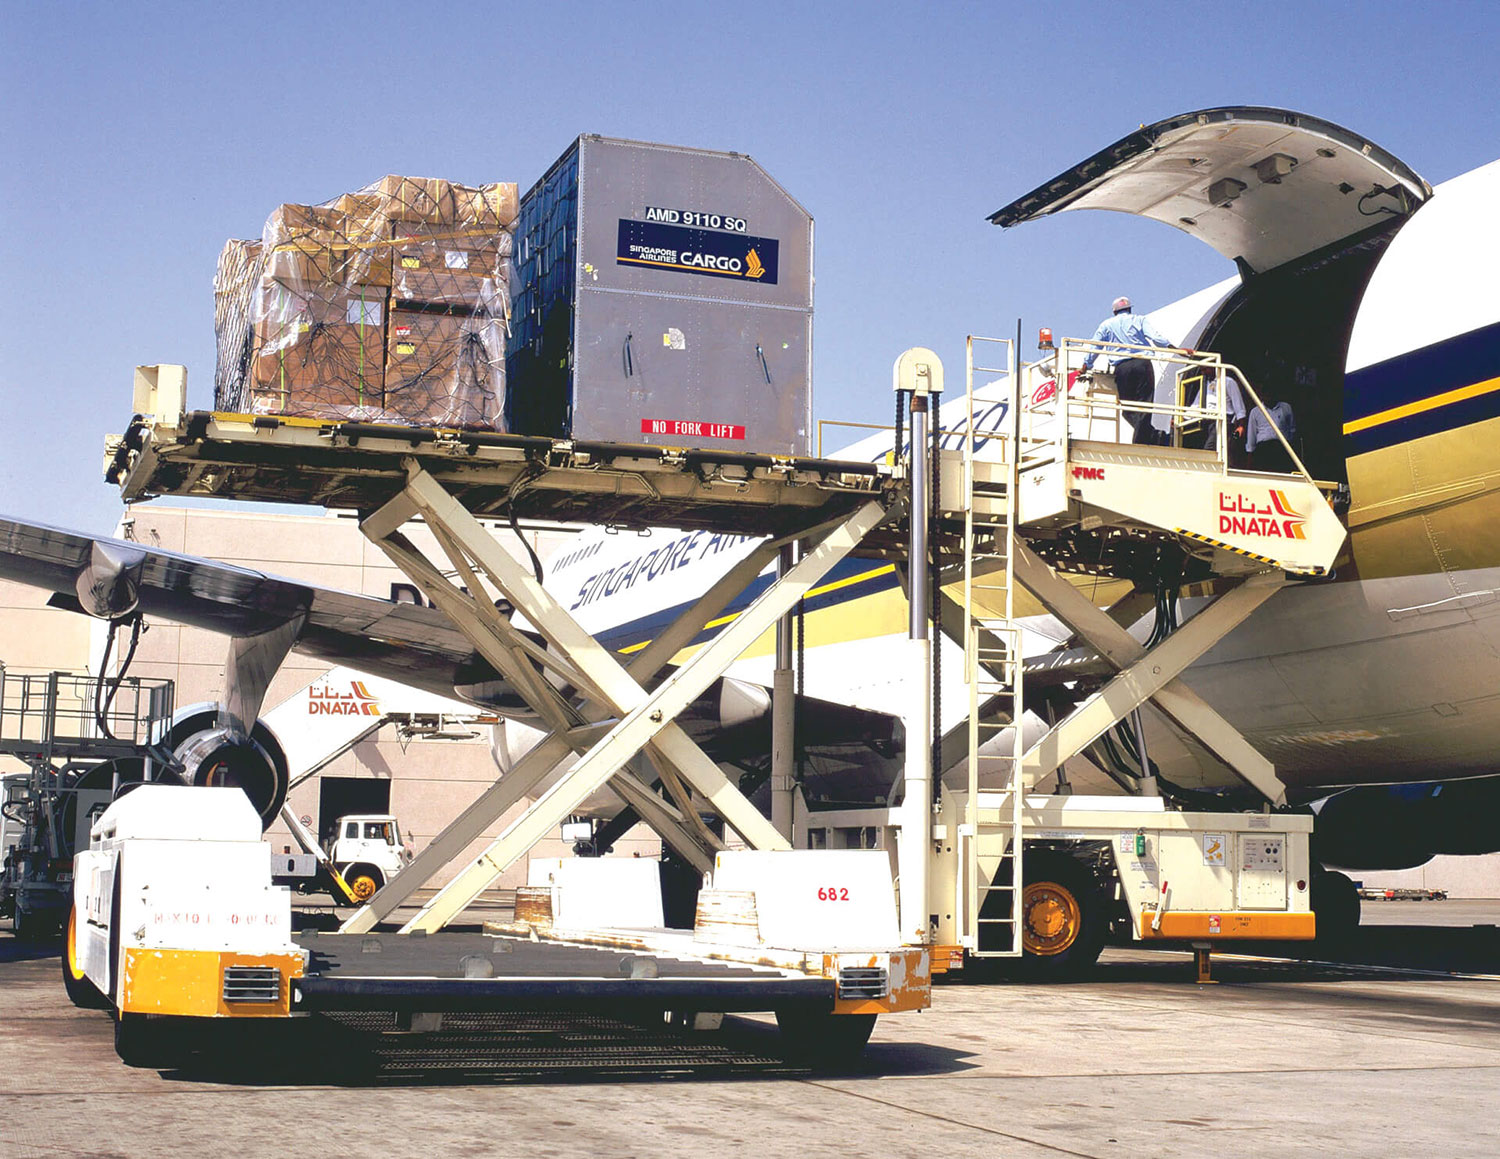 Airfreight Services Nosedive From Europe To The Usa Cargo Newswire International Cargo Wire News